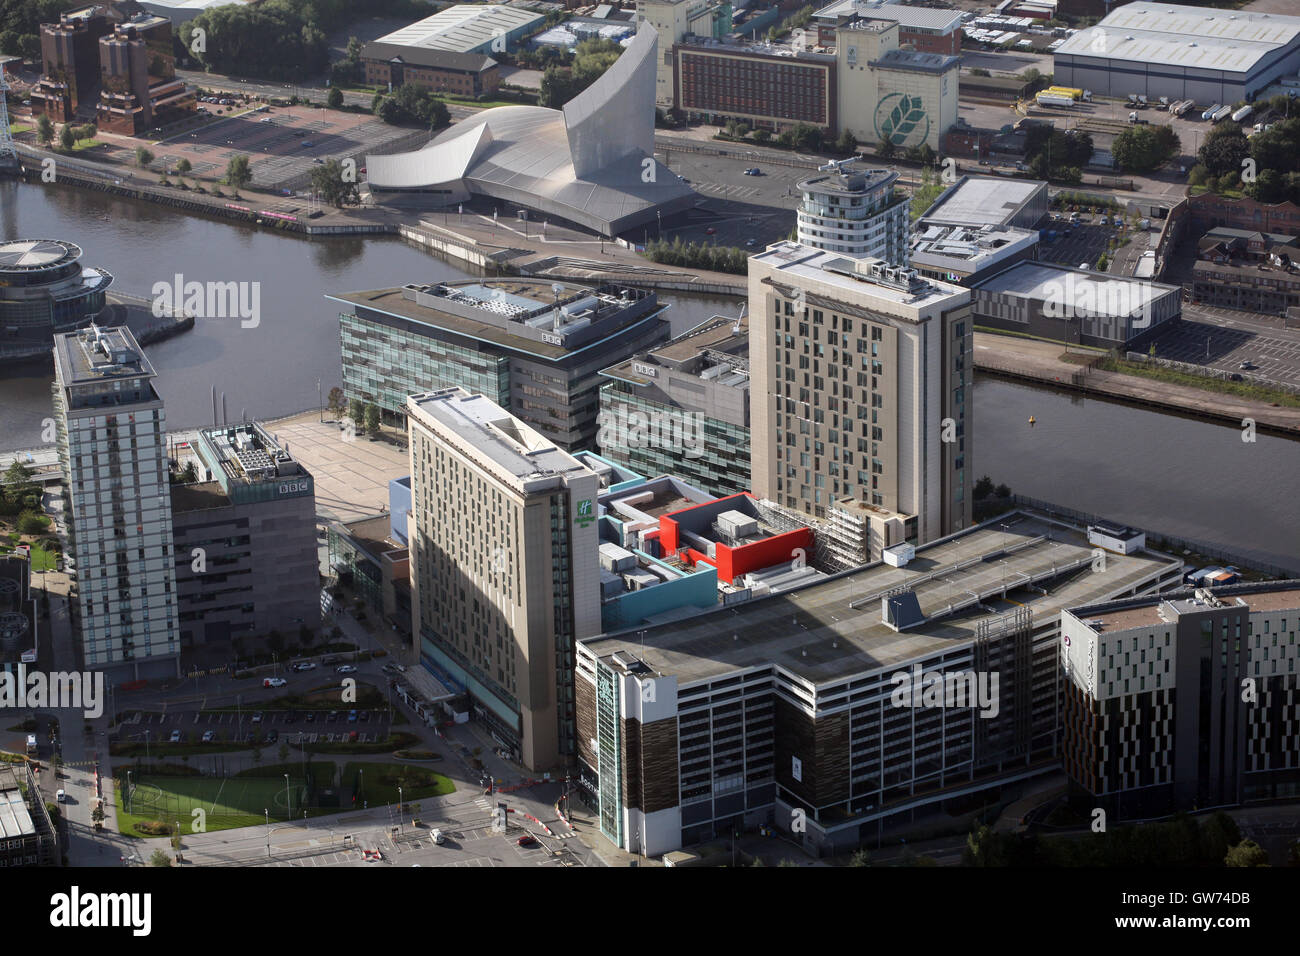 aerial view of the BBC Studios at MediaCity Salford Quays, Manchester, UK - Stock Image